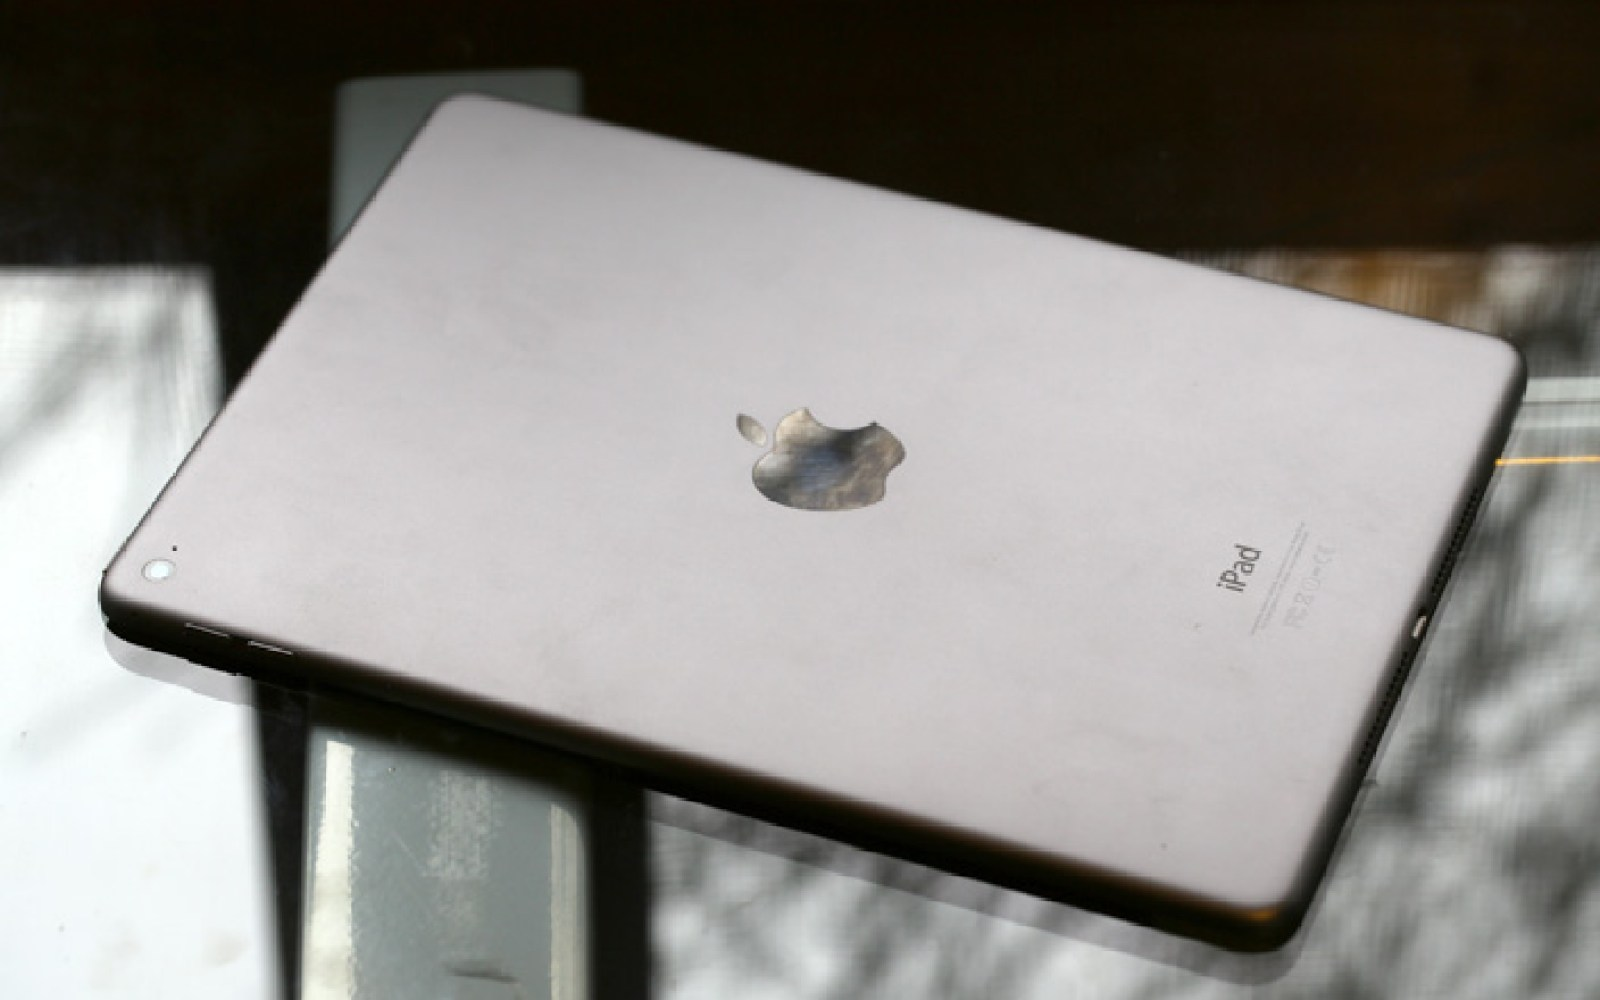 Test iPad stolen from Cupertino home, not yet recovered